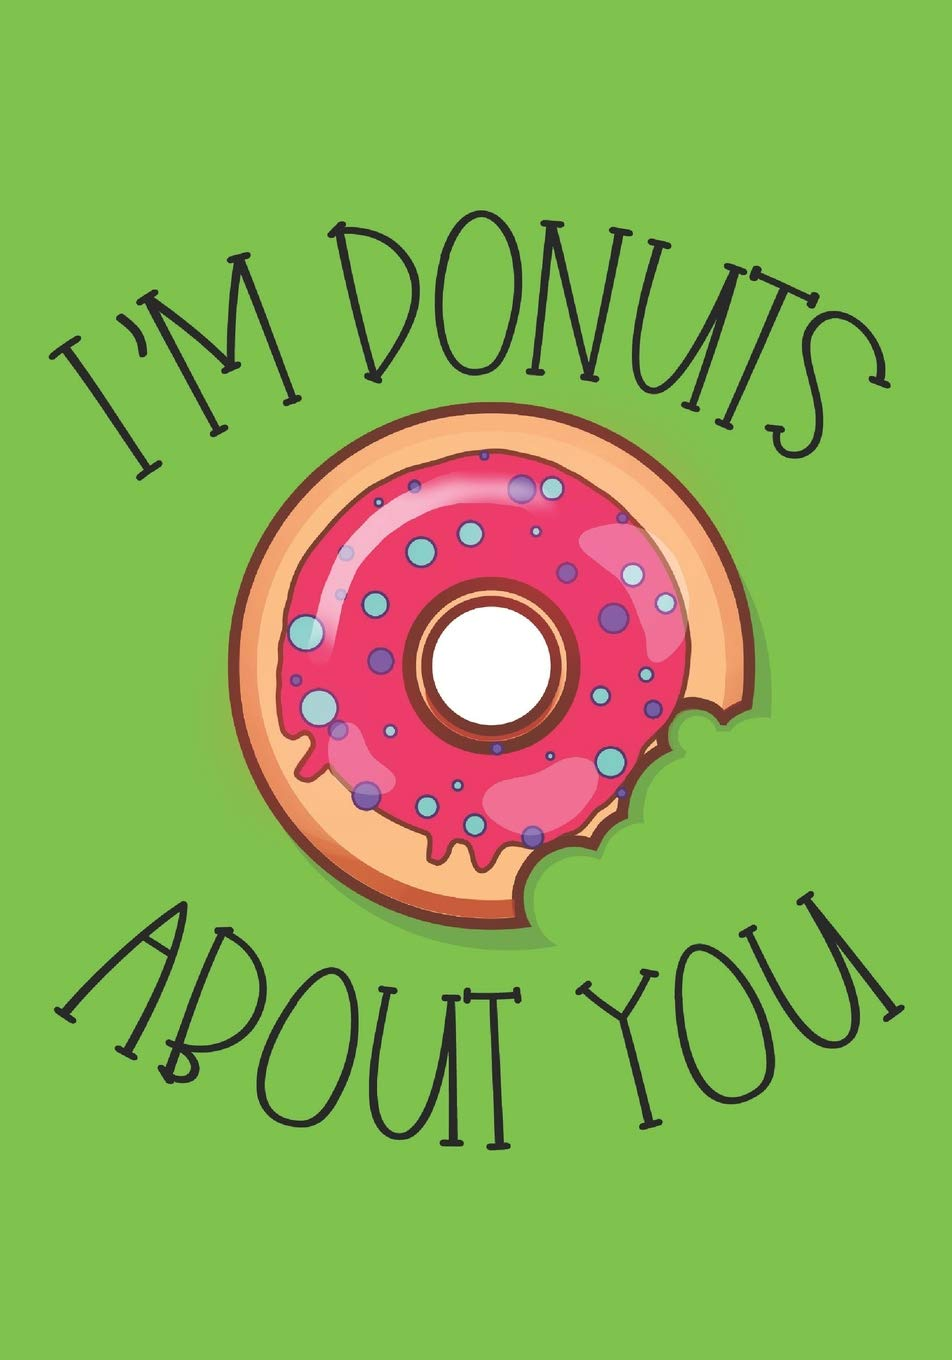 I M Donuts About You Funny Quotes Donut Notebook Journal For Adults Children Sweets Lovers To Writing 7x10 Inch 17 78x25 4 Cm College Ruled Blank Pages Red Brown Black Green Pattern Broadcast Snack 9781070901114 Amazon Com Books